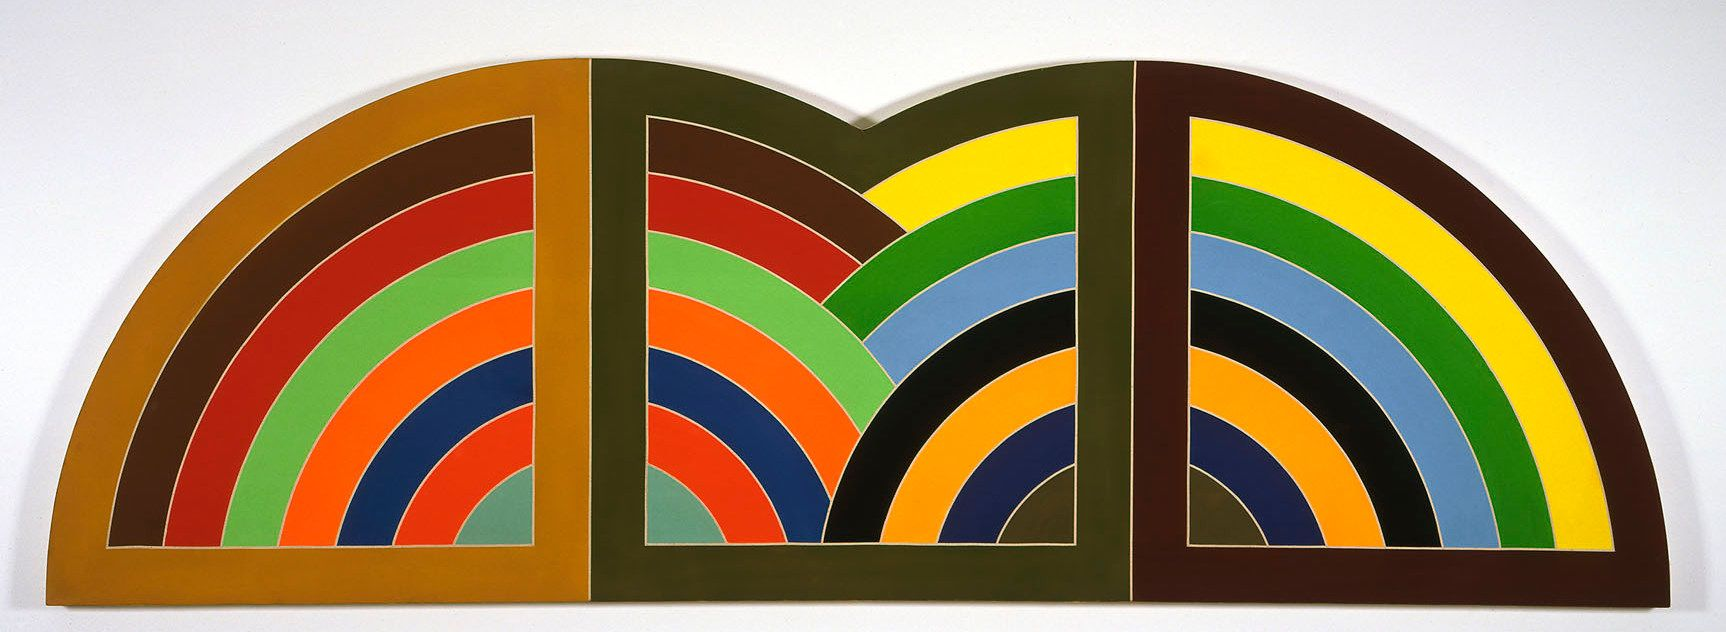 frank stella paintings - Google Search